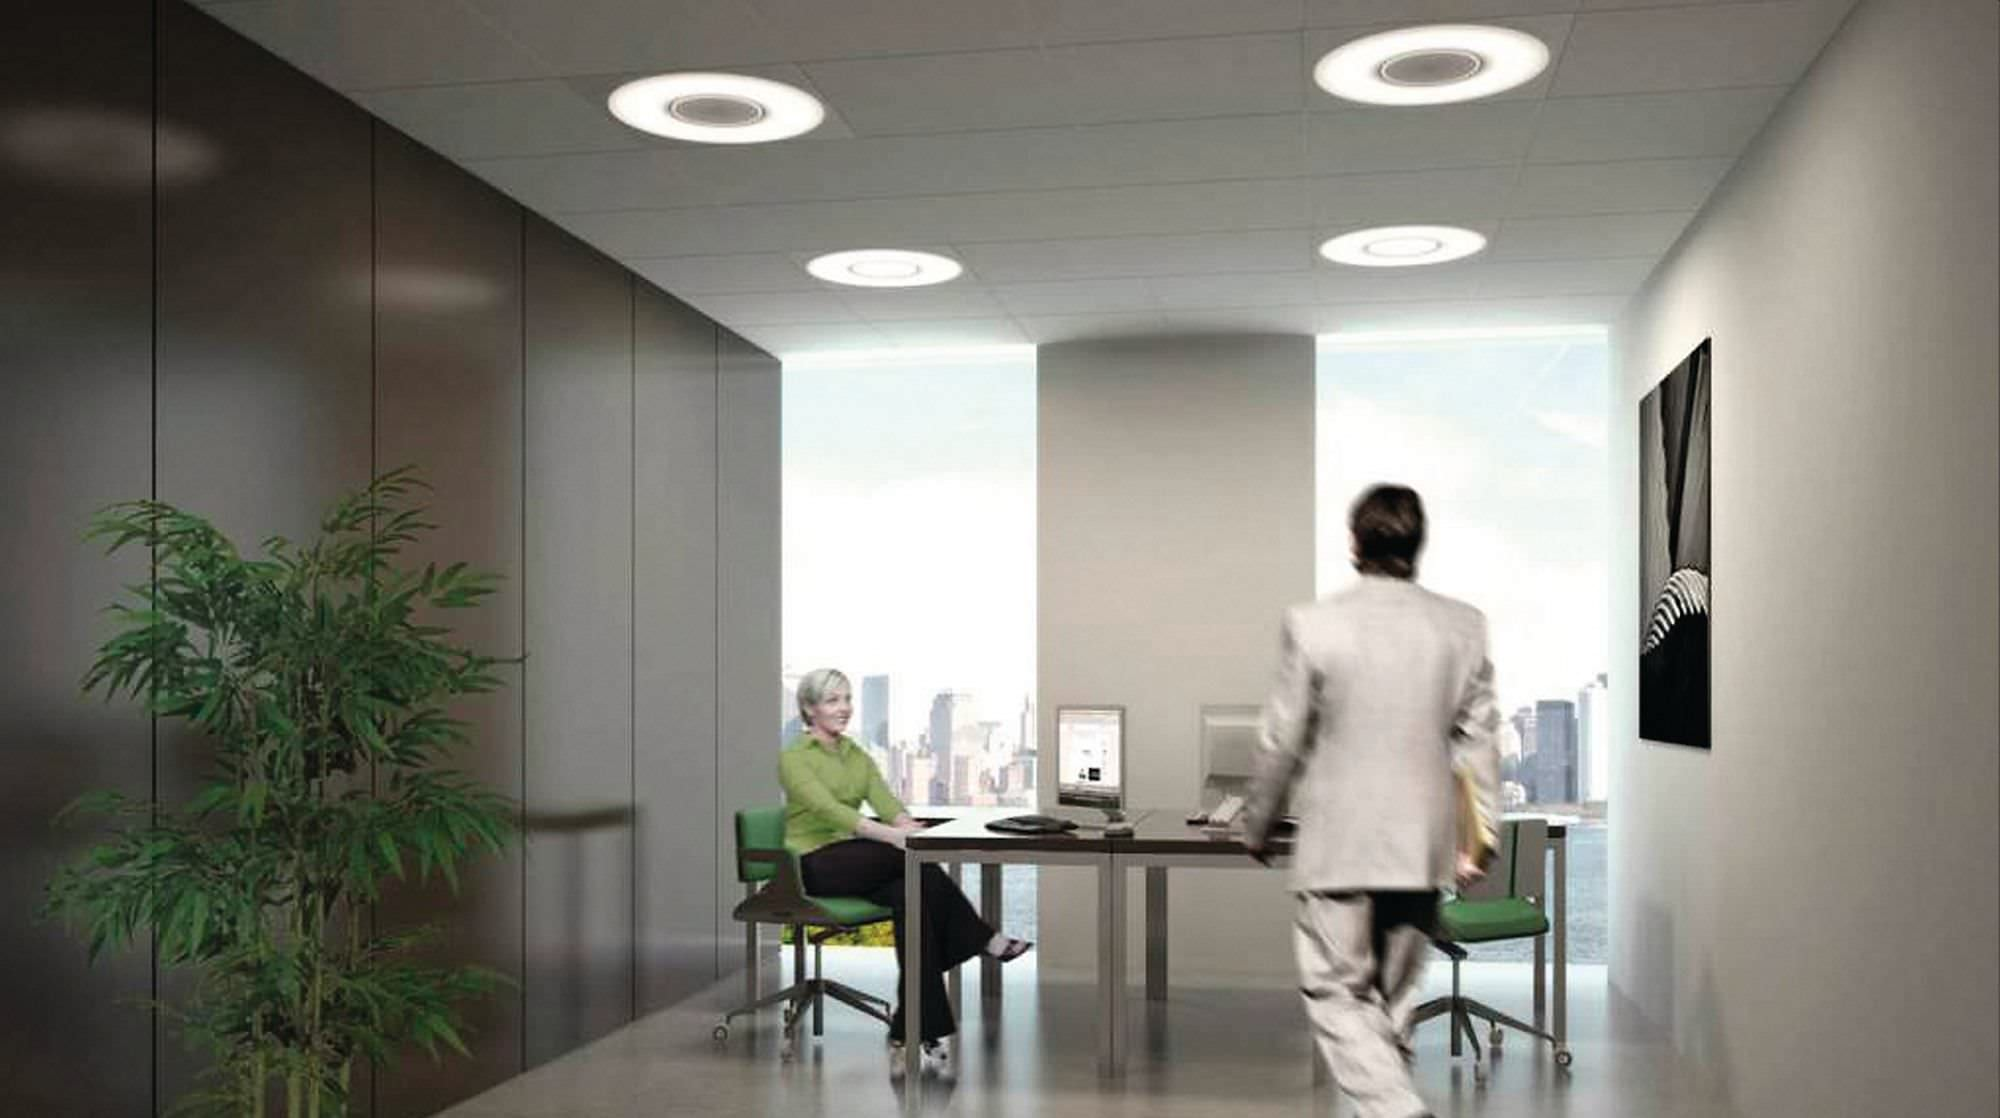 Plafondlamp In Keuken Interior Juno Lighting Cool Ceiling Led Rounded Recessed